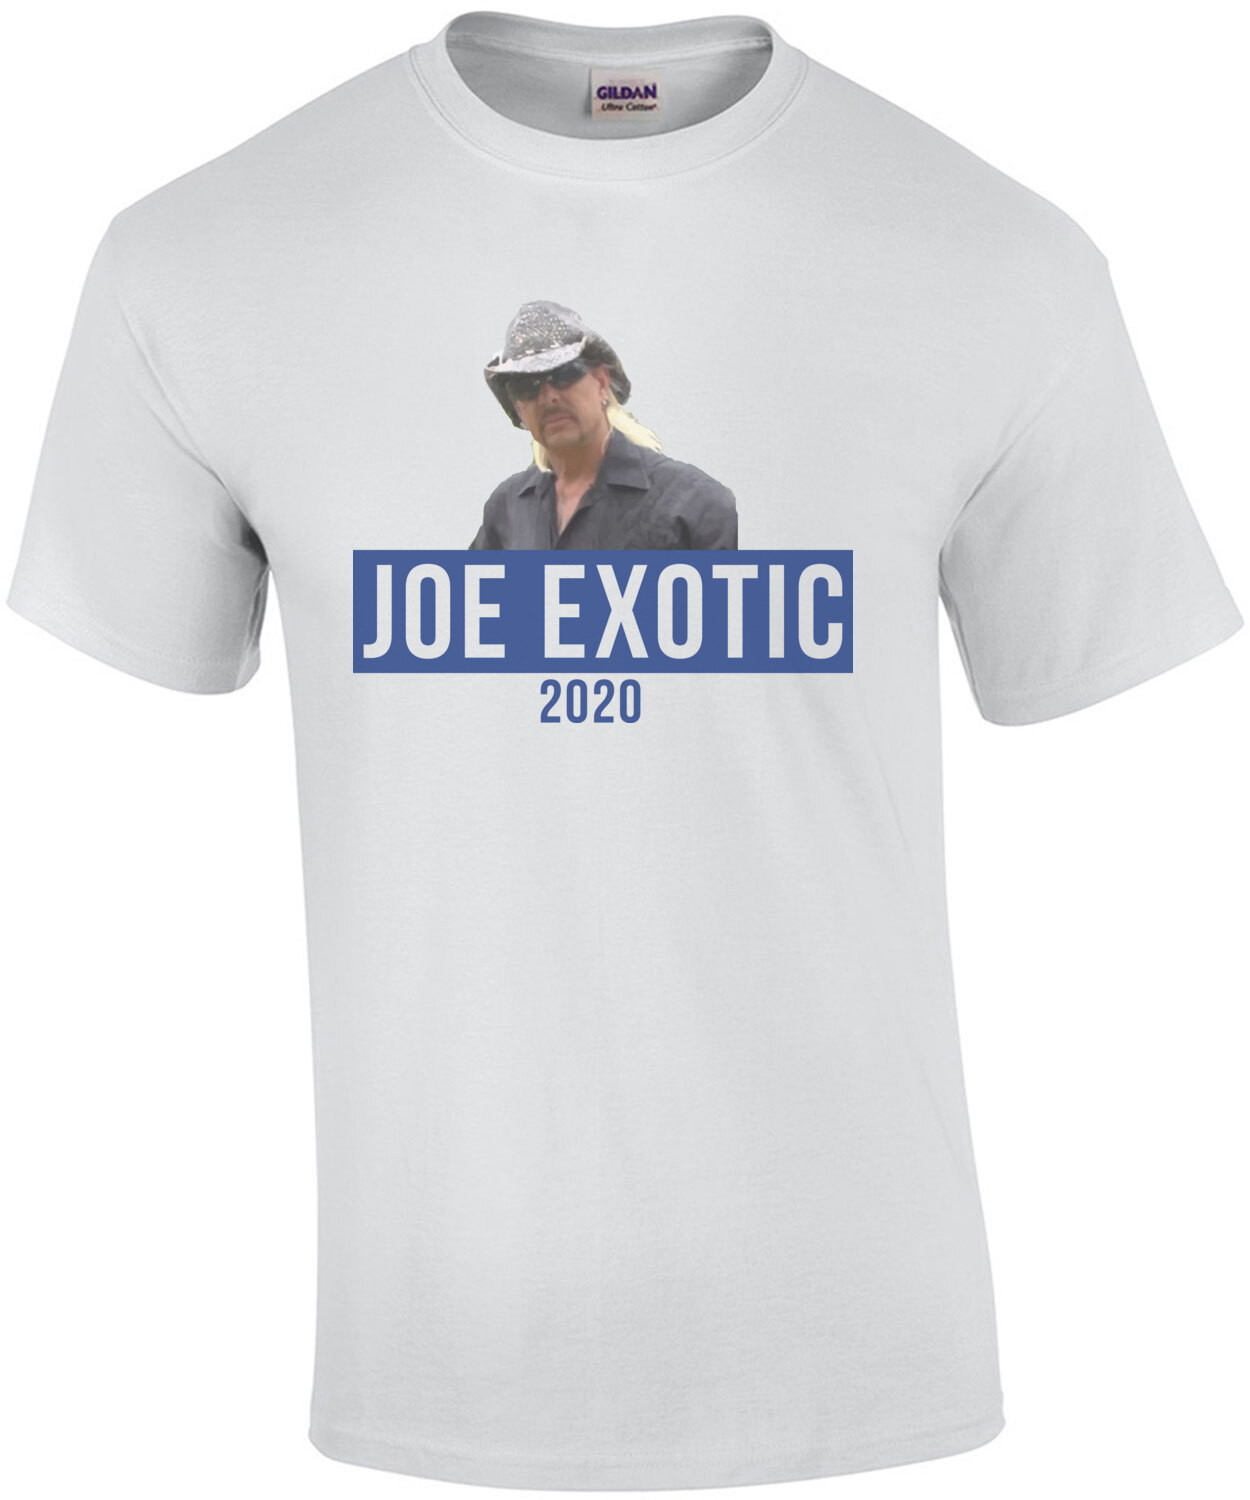 Joe Exotic 2020 Presidential T-Shirt - Tiger King Shirt